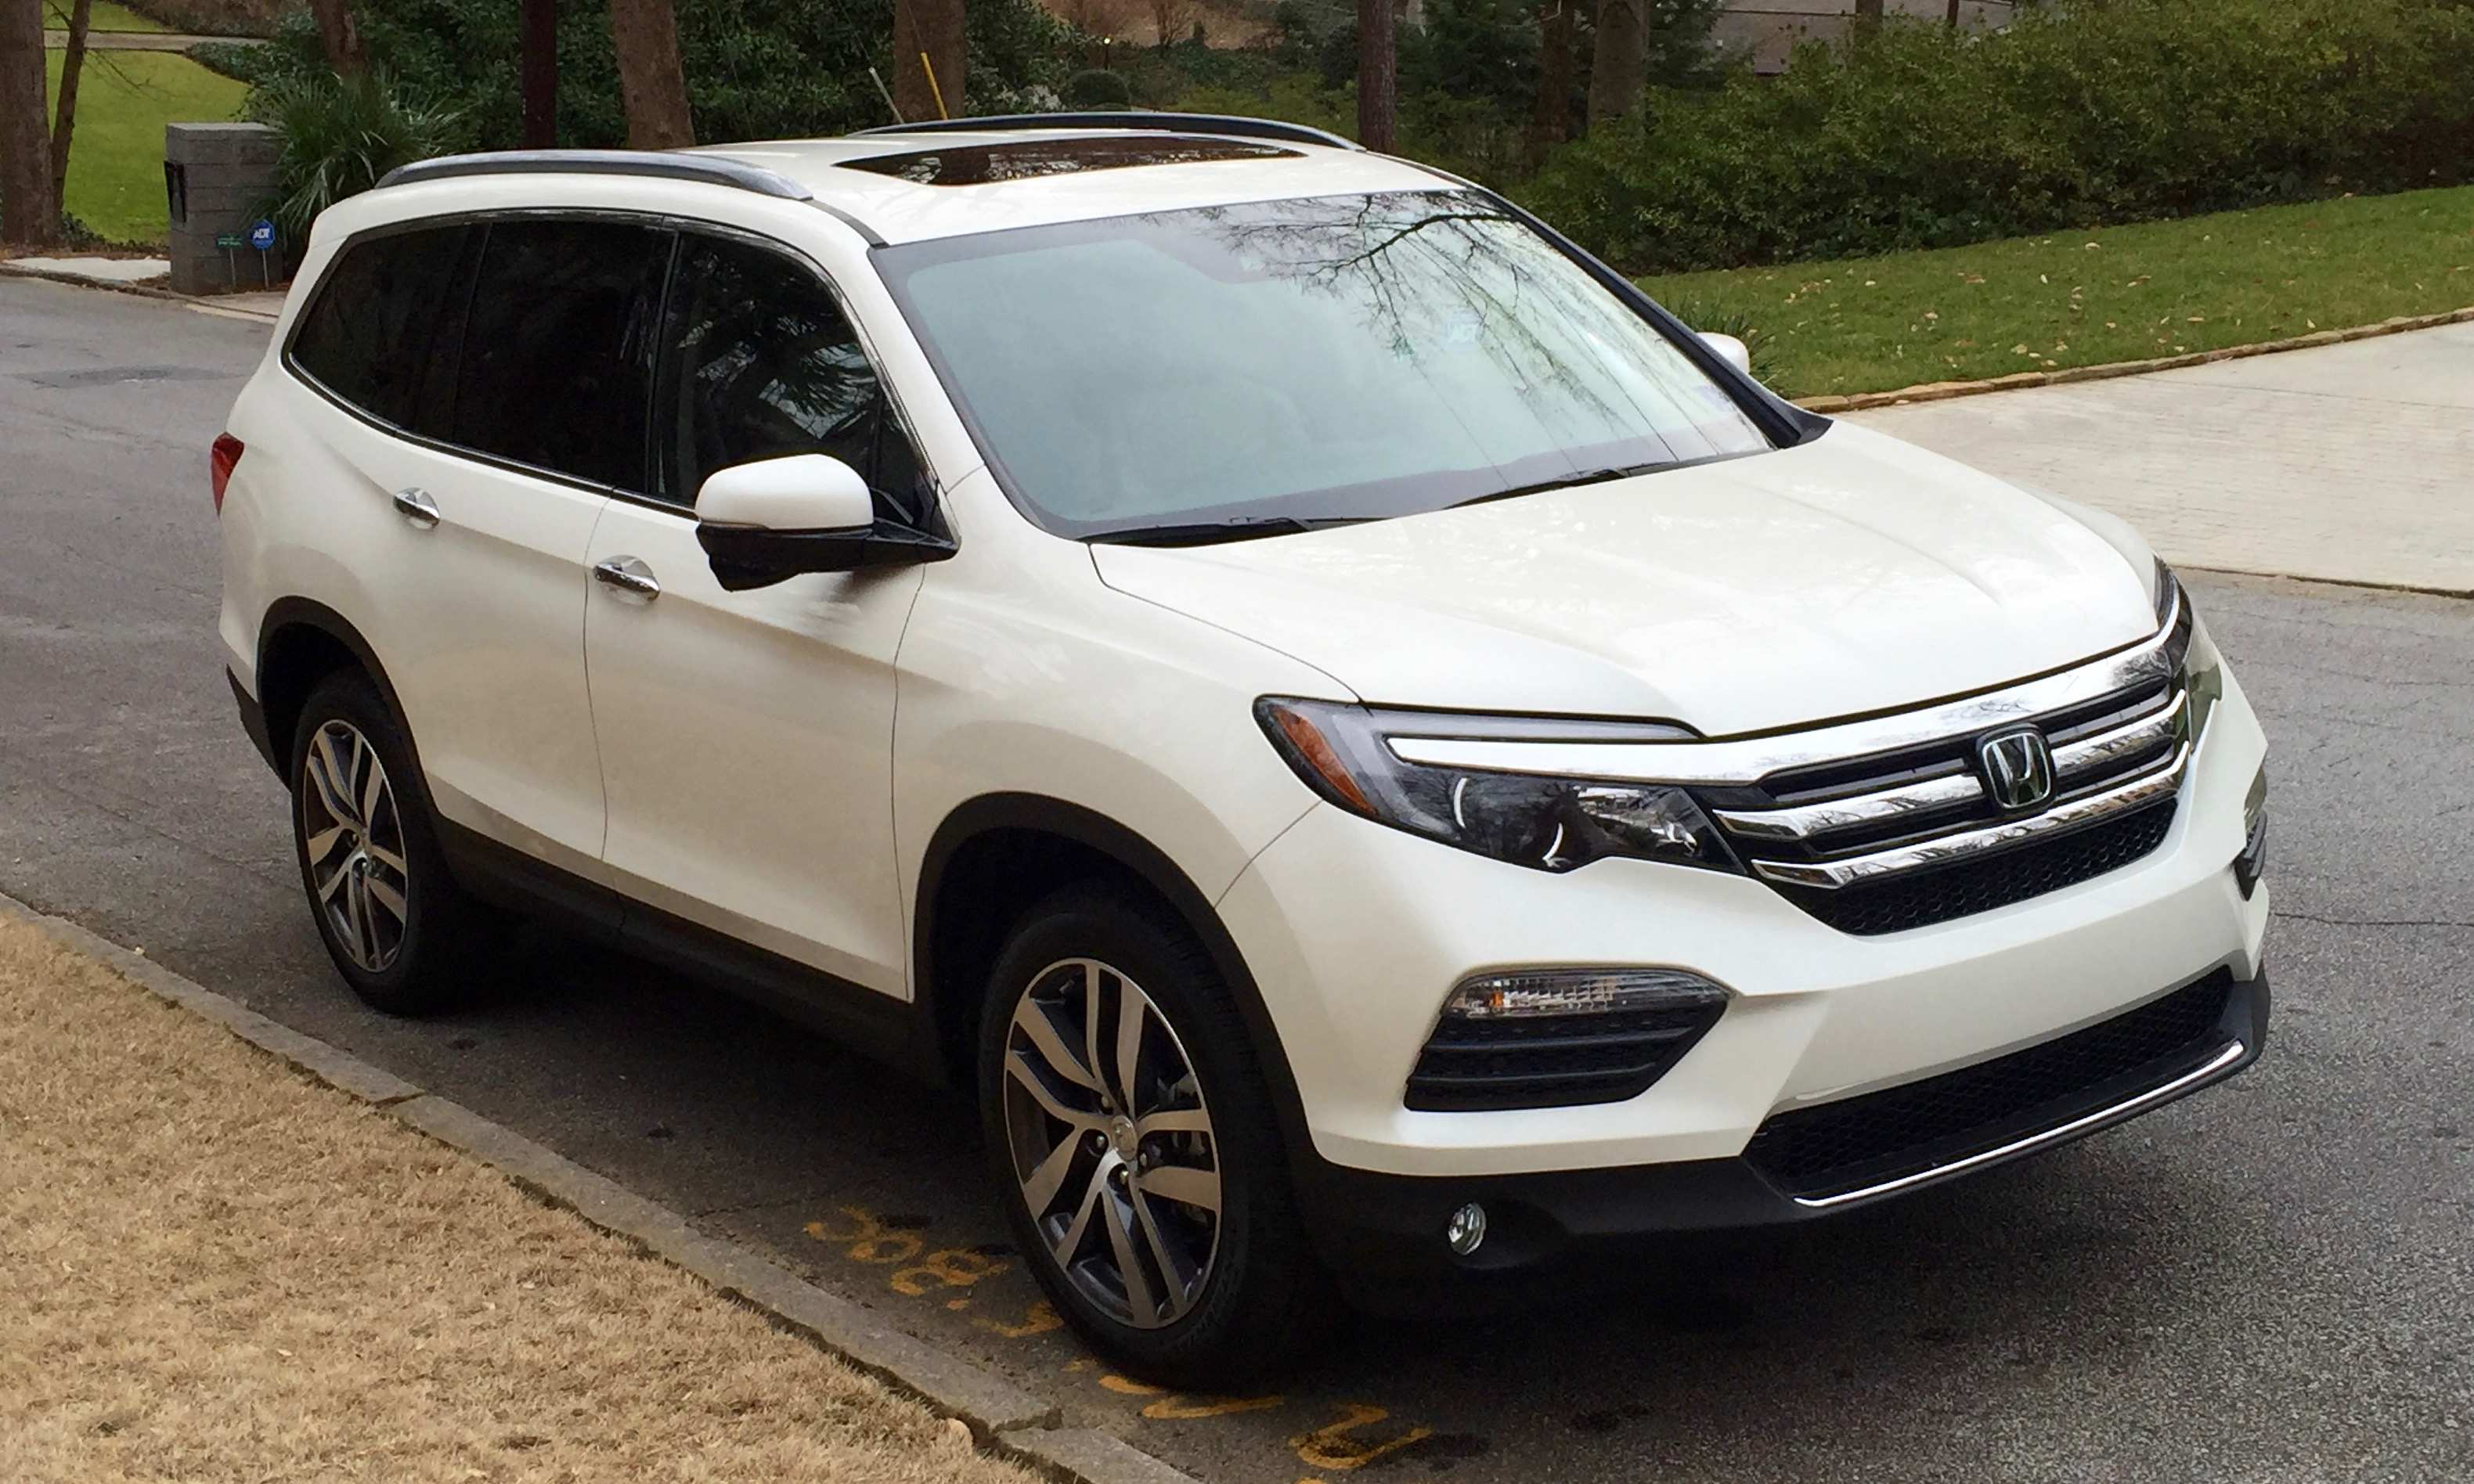 12 All New 2020 Honda Pilot Release Date Redesign and Concept with 2020 Honda Pilot Release Date